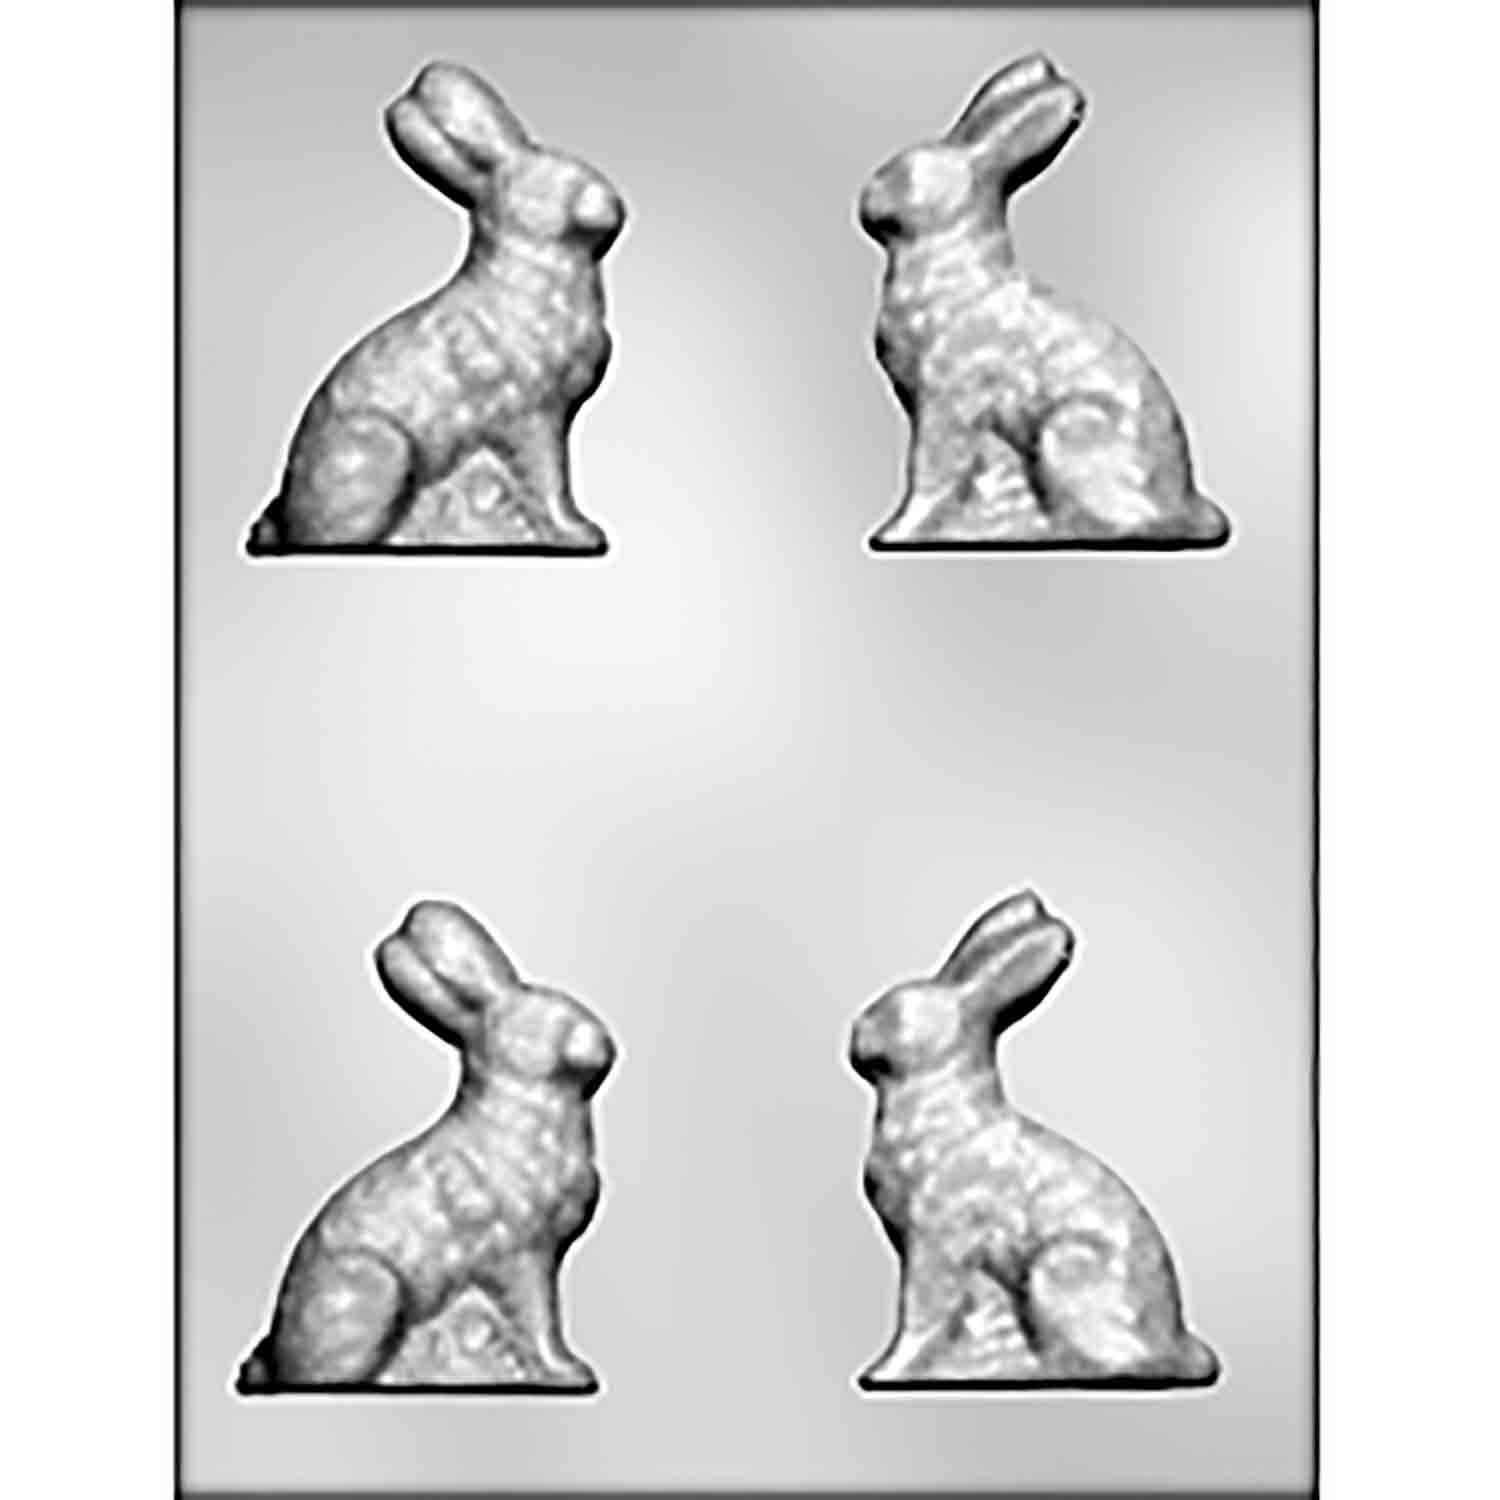 3D Sitting Bunny Chocolate Candy Mold